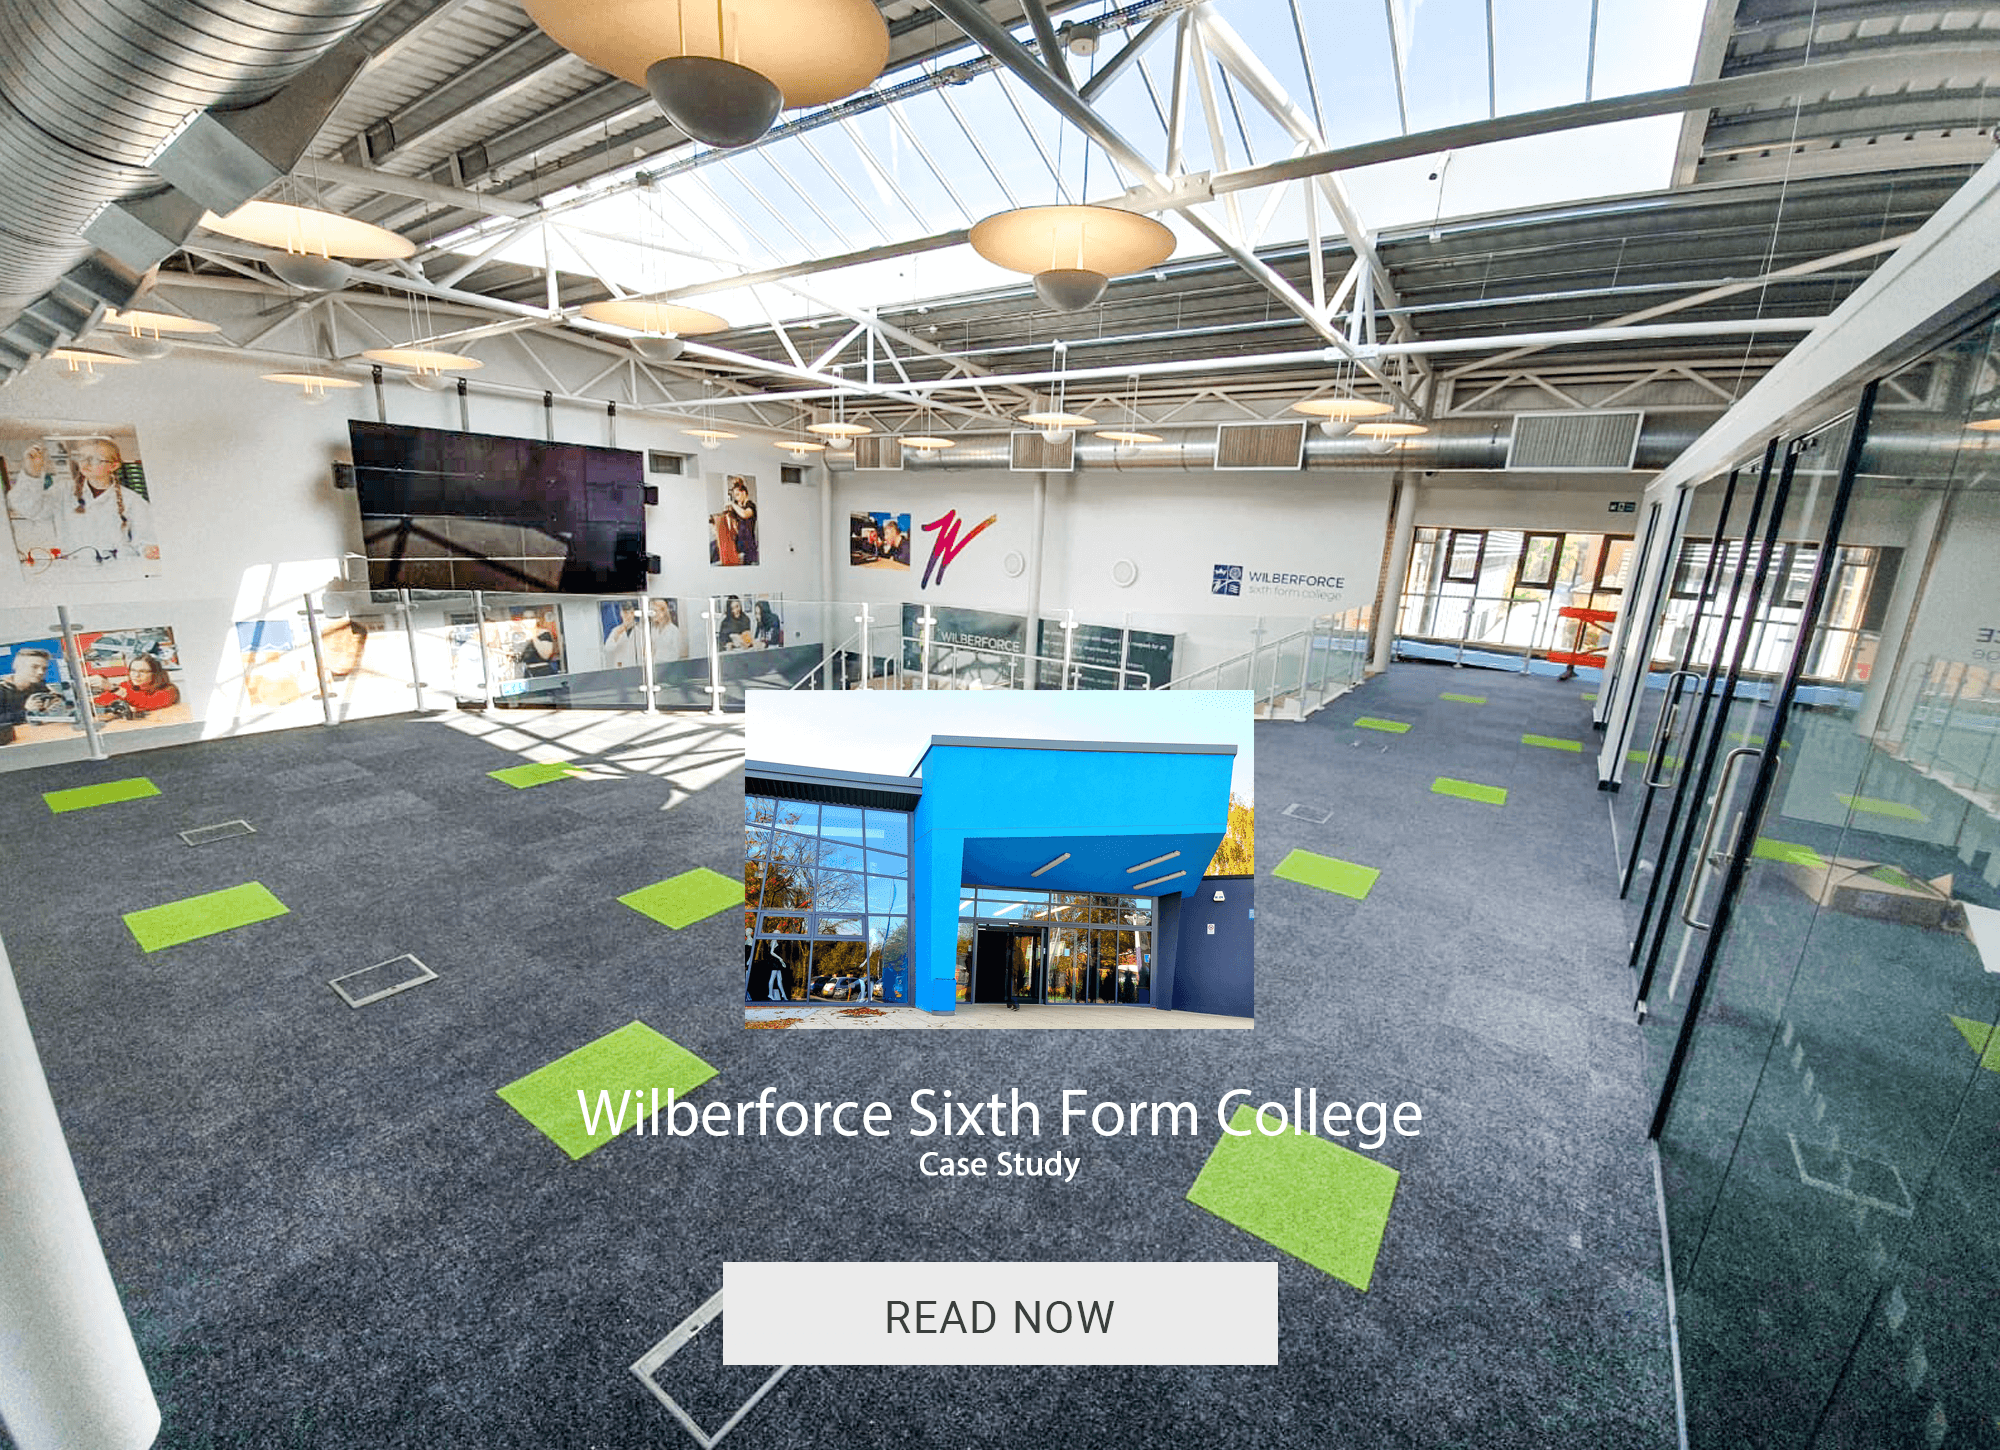 Wilberforce Sixth Form College